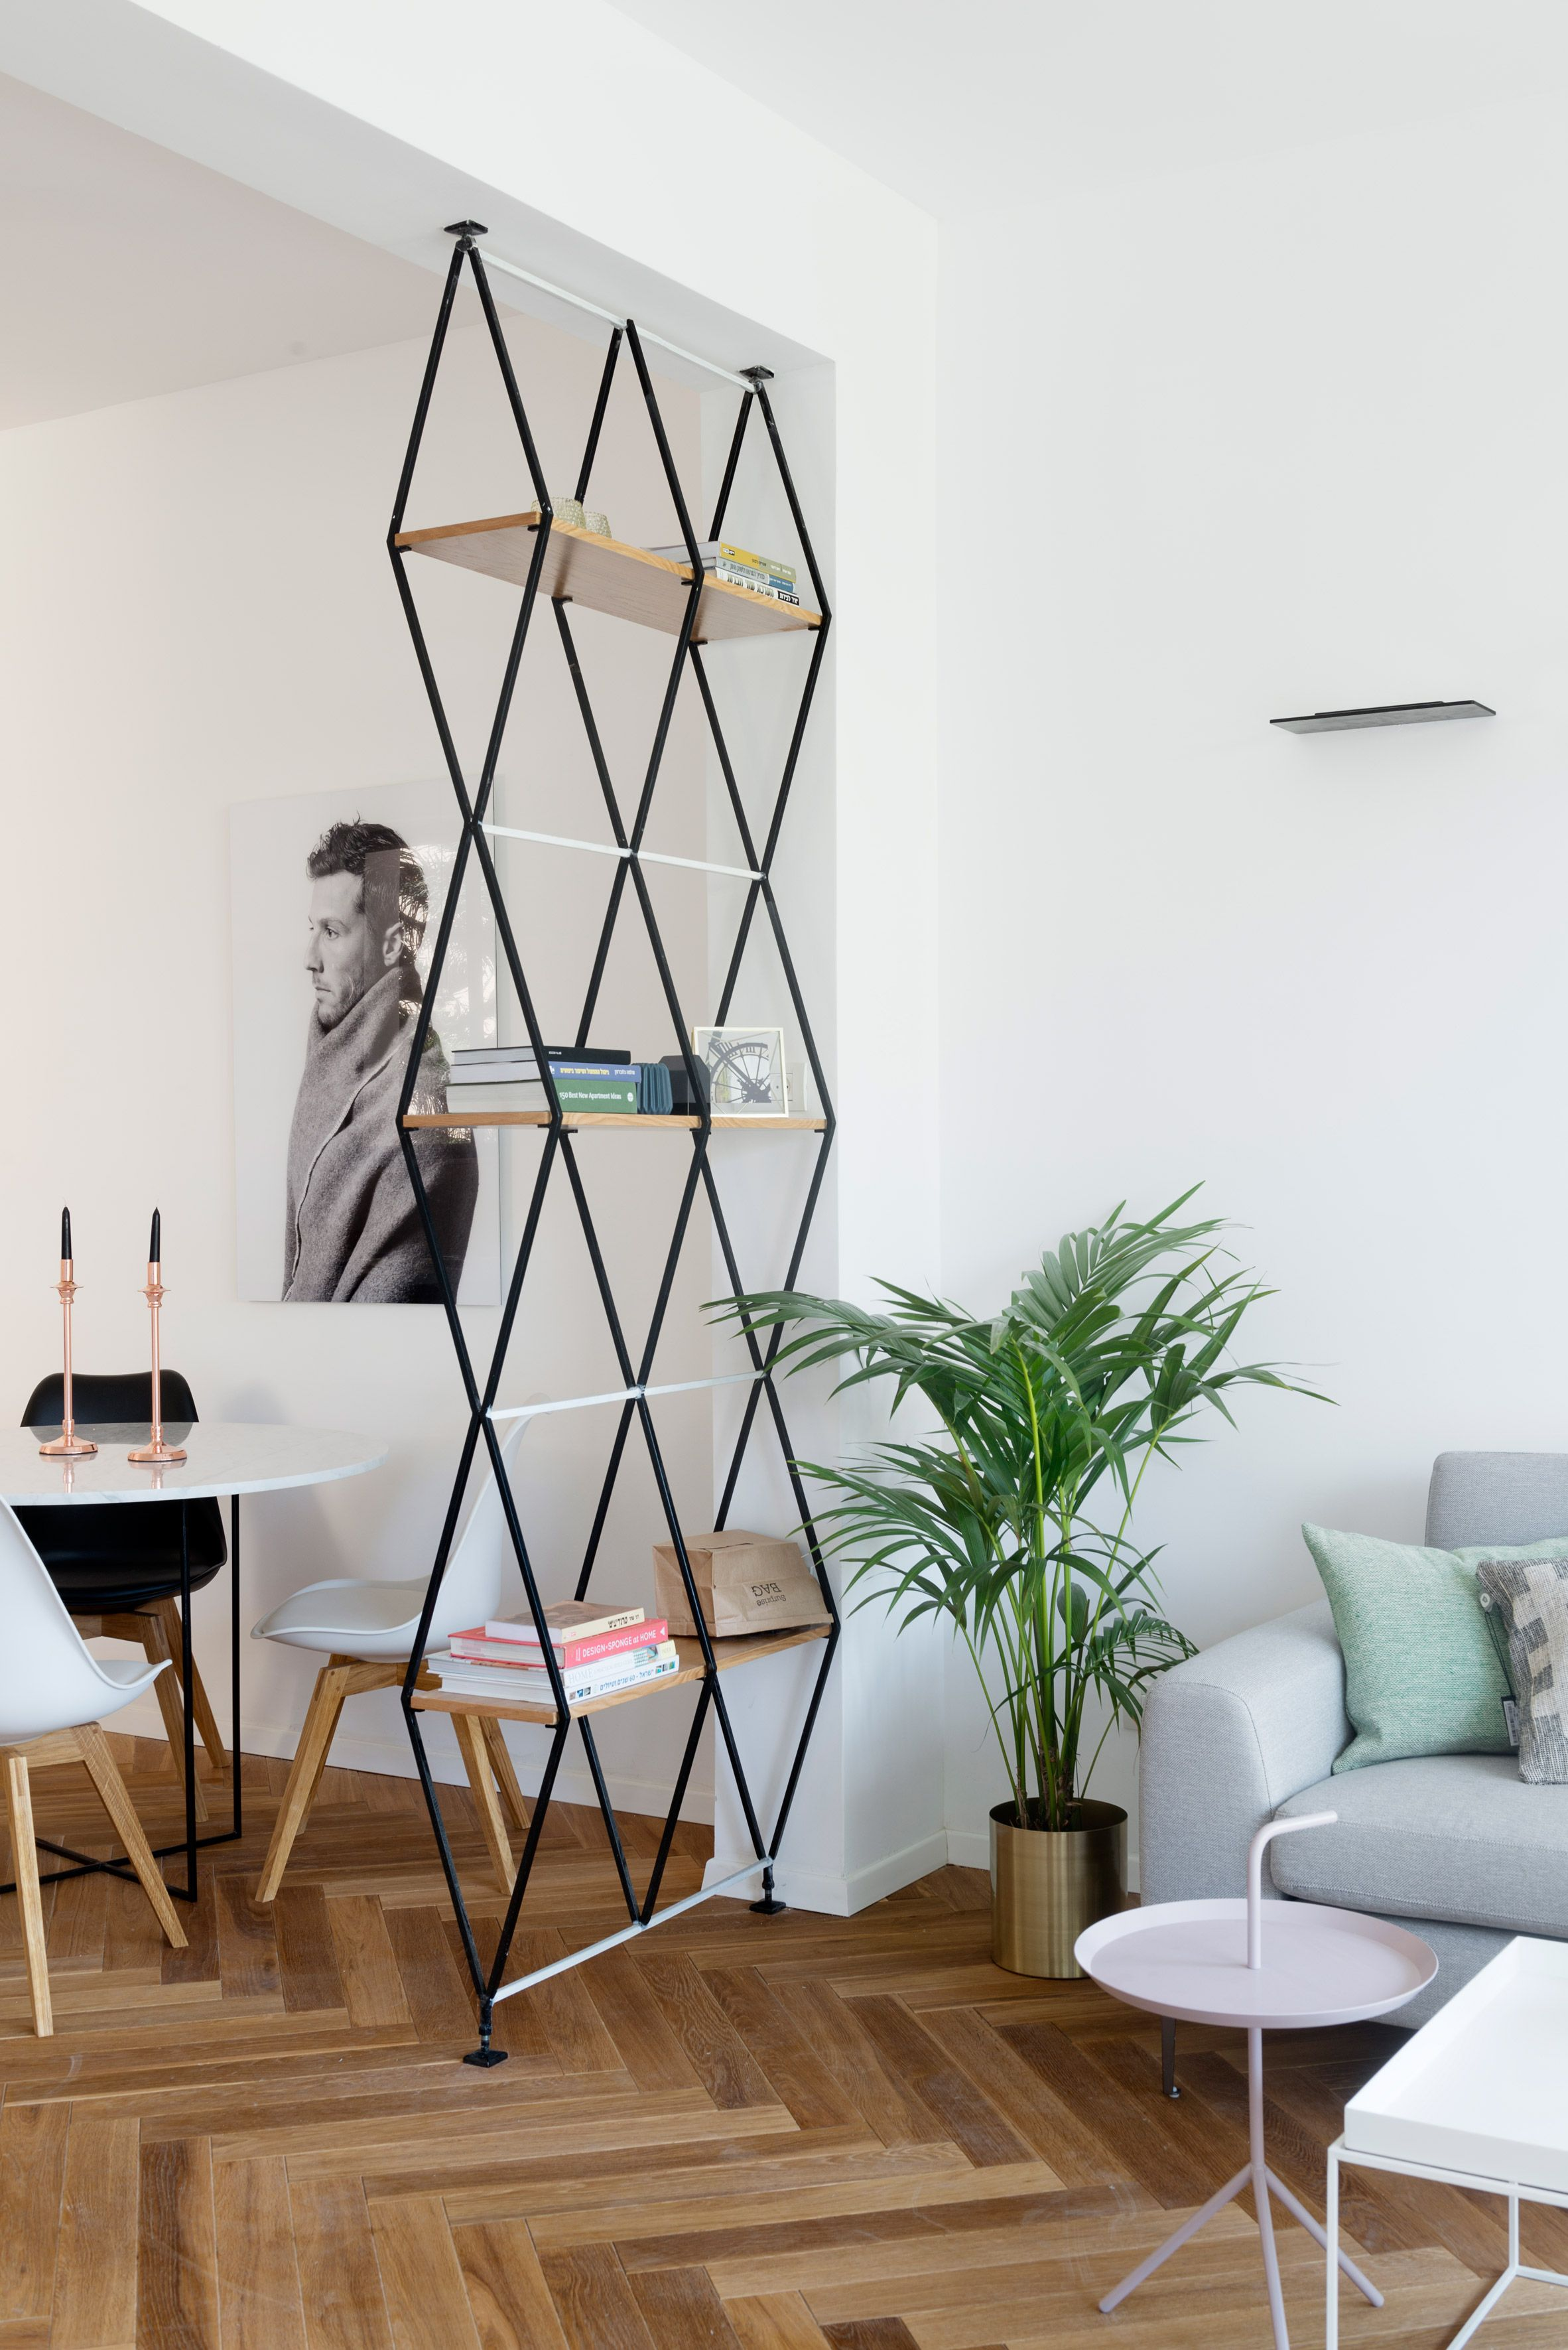 Geometric Bookcase Made From Black Steel And Wood Used To Distinguish The Dining Area